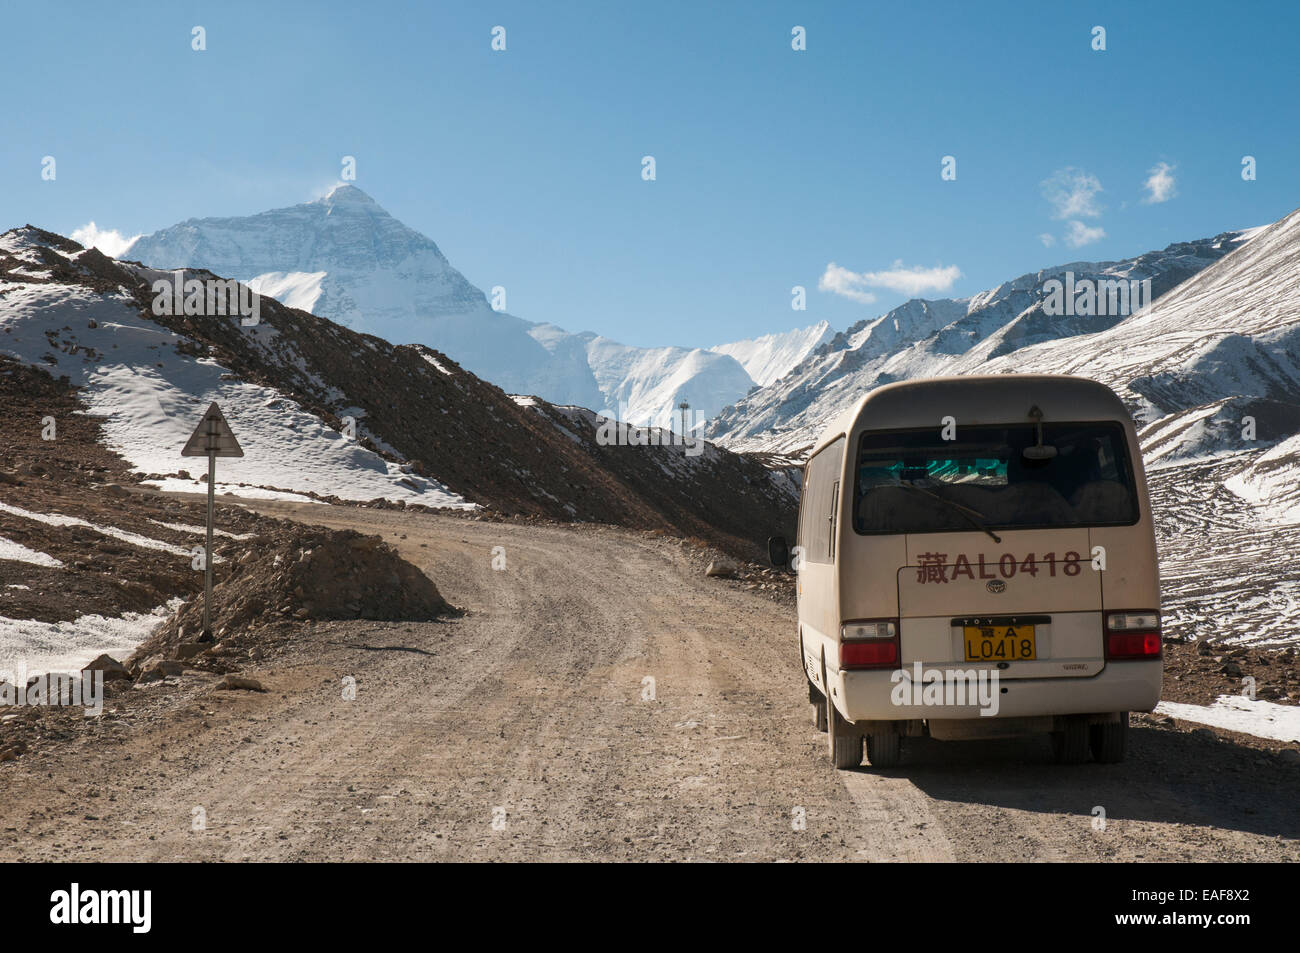 The road into Everest (Qomolangma) Base Camp, Tibet, China. Mt Everest (8488m) looms up at left. - Stock Image